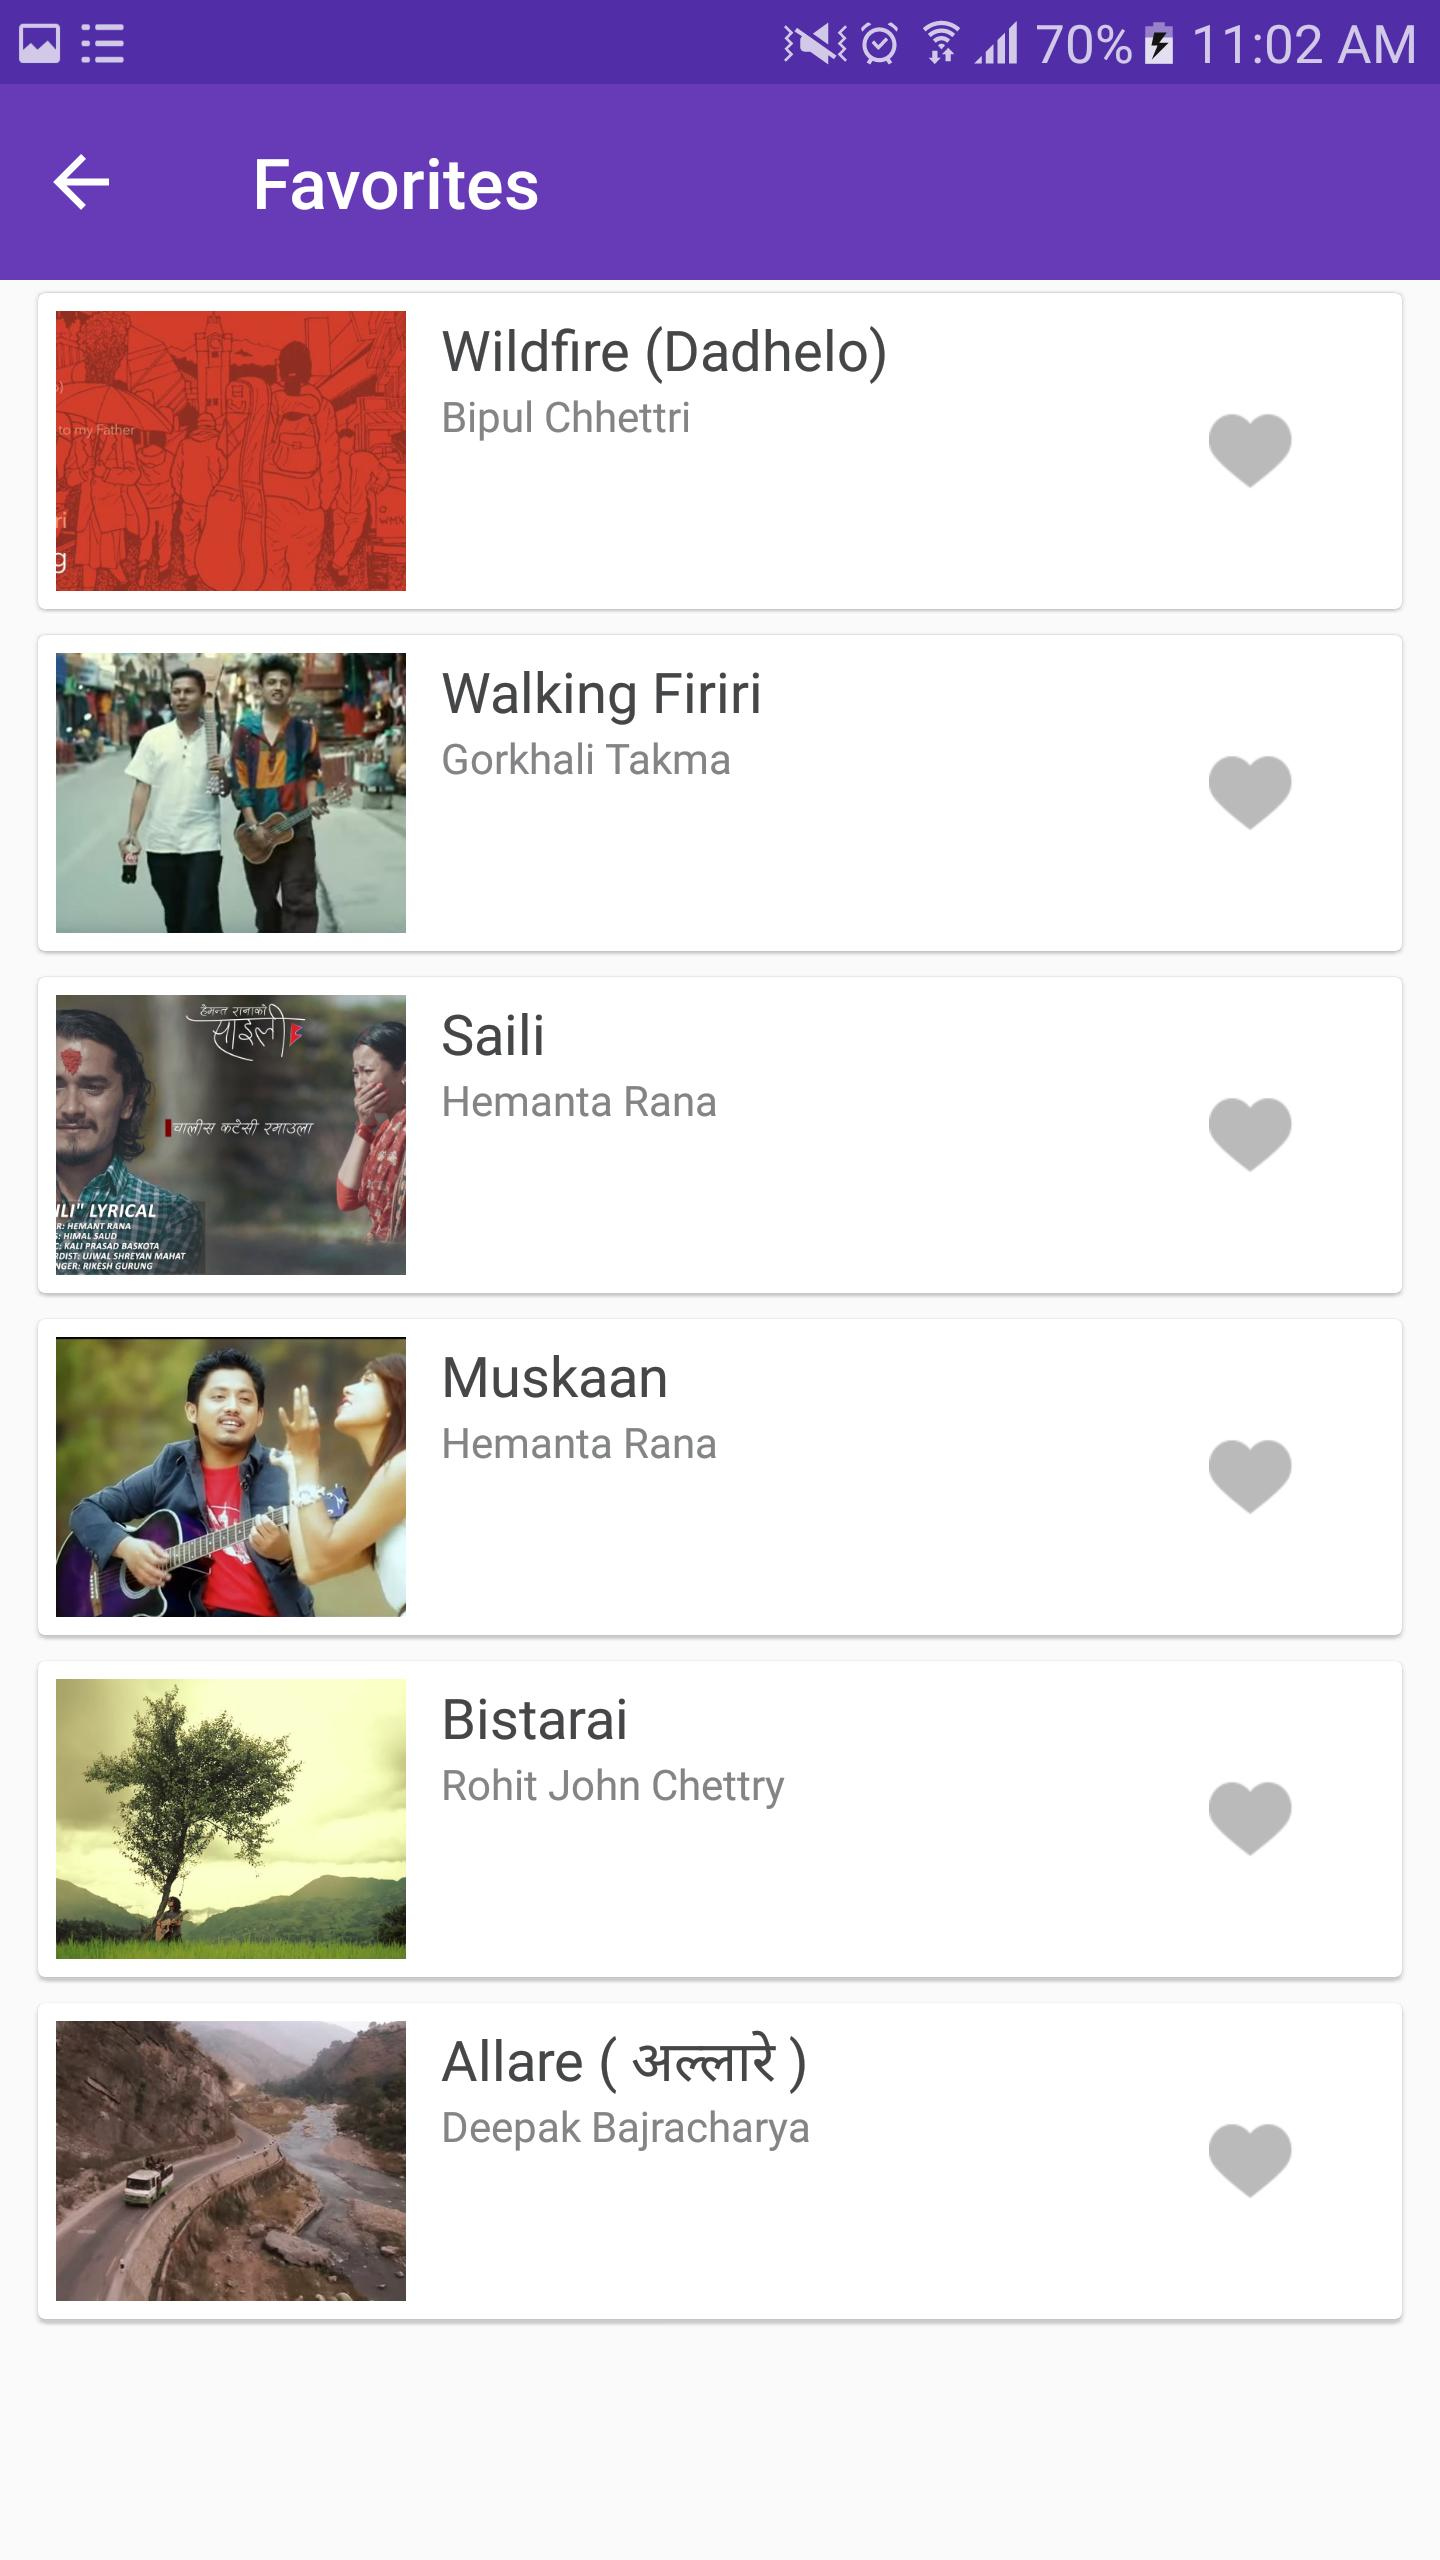 Lyrics Nepal for Android - APK Download